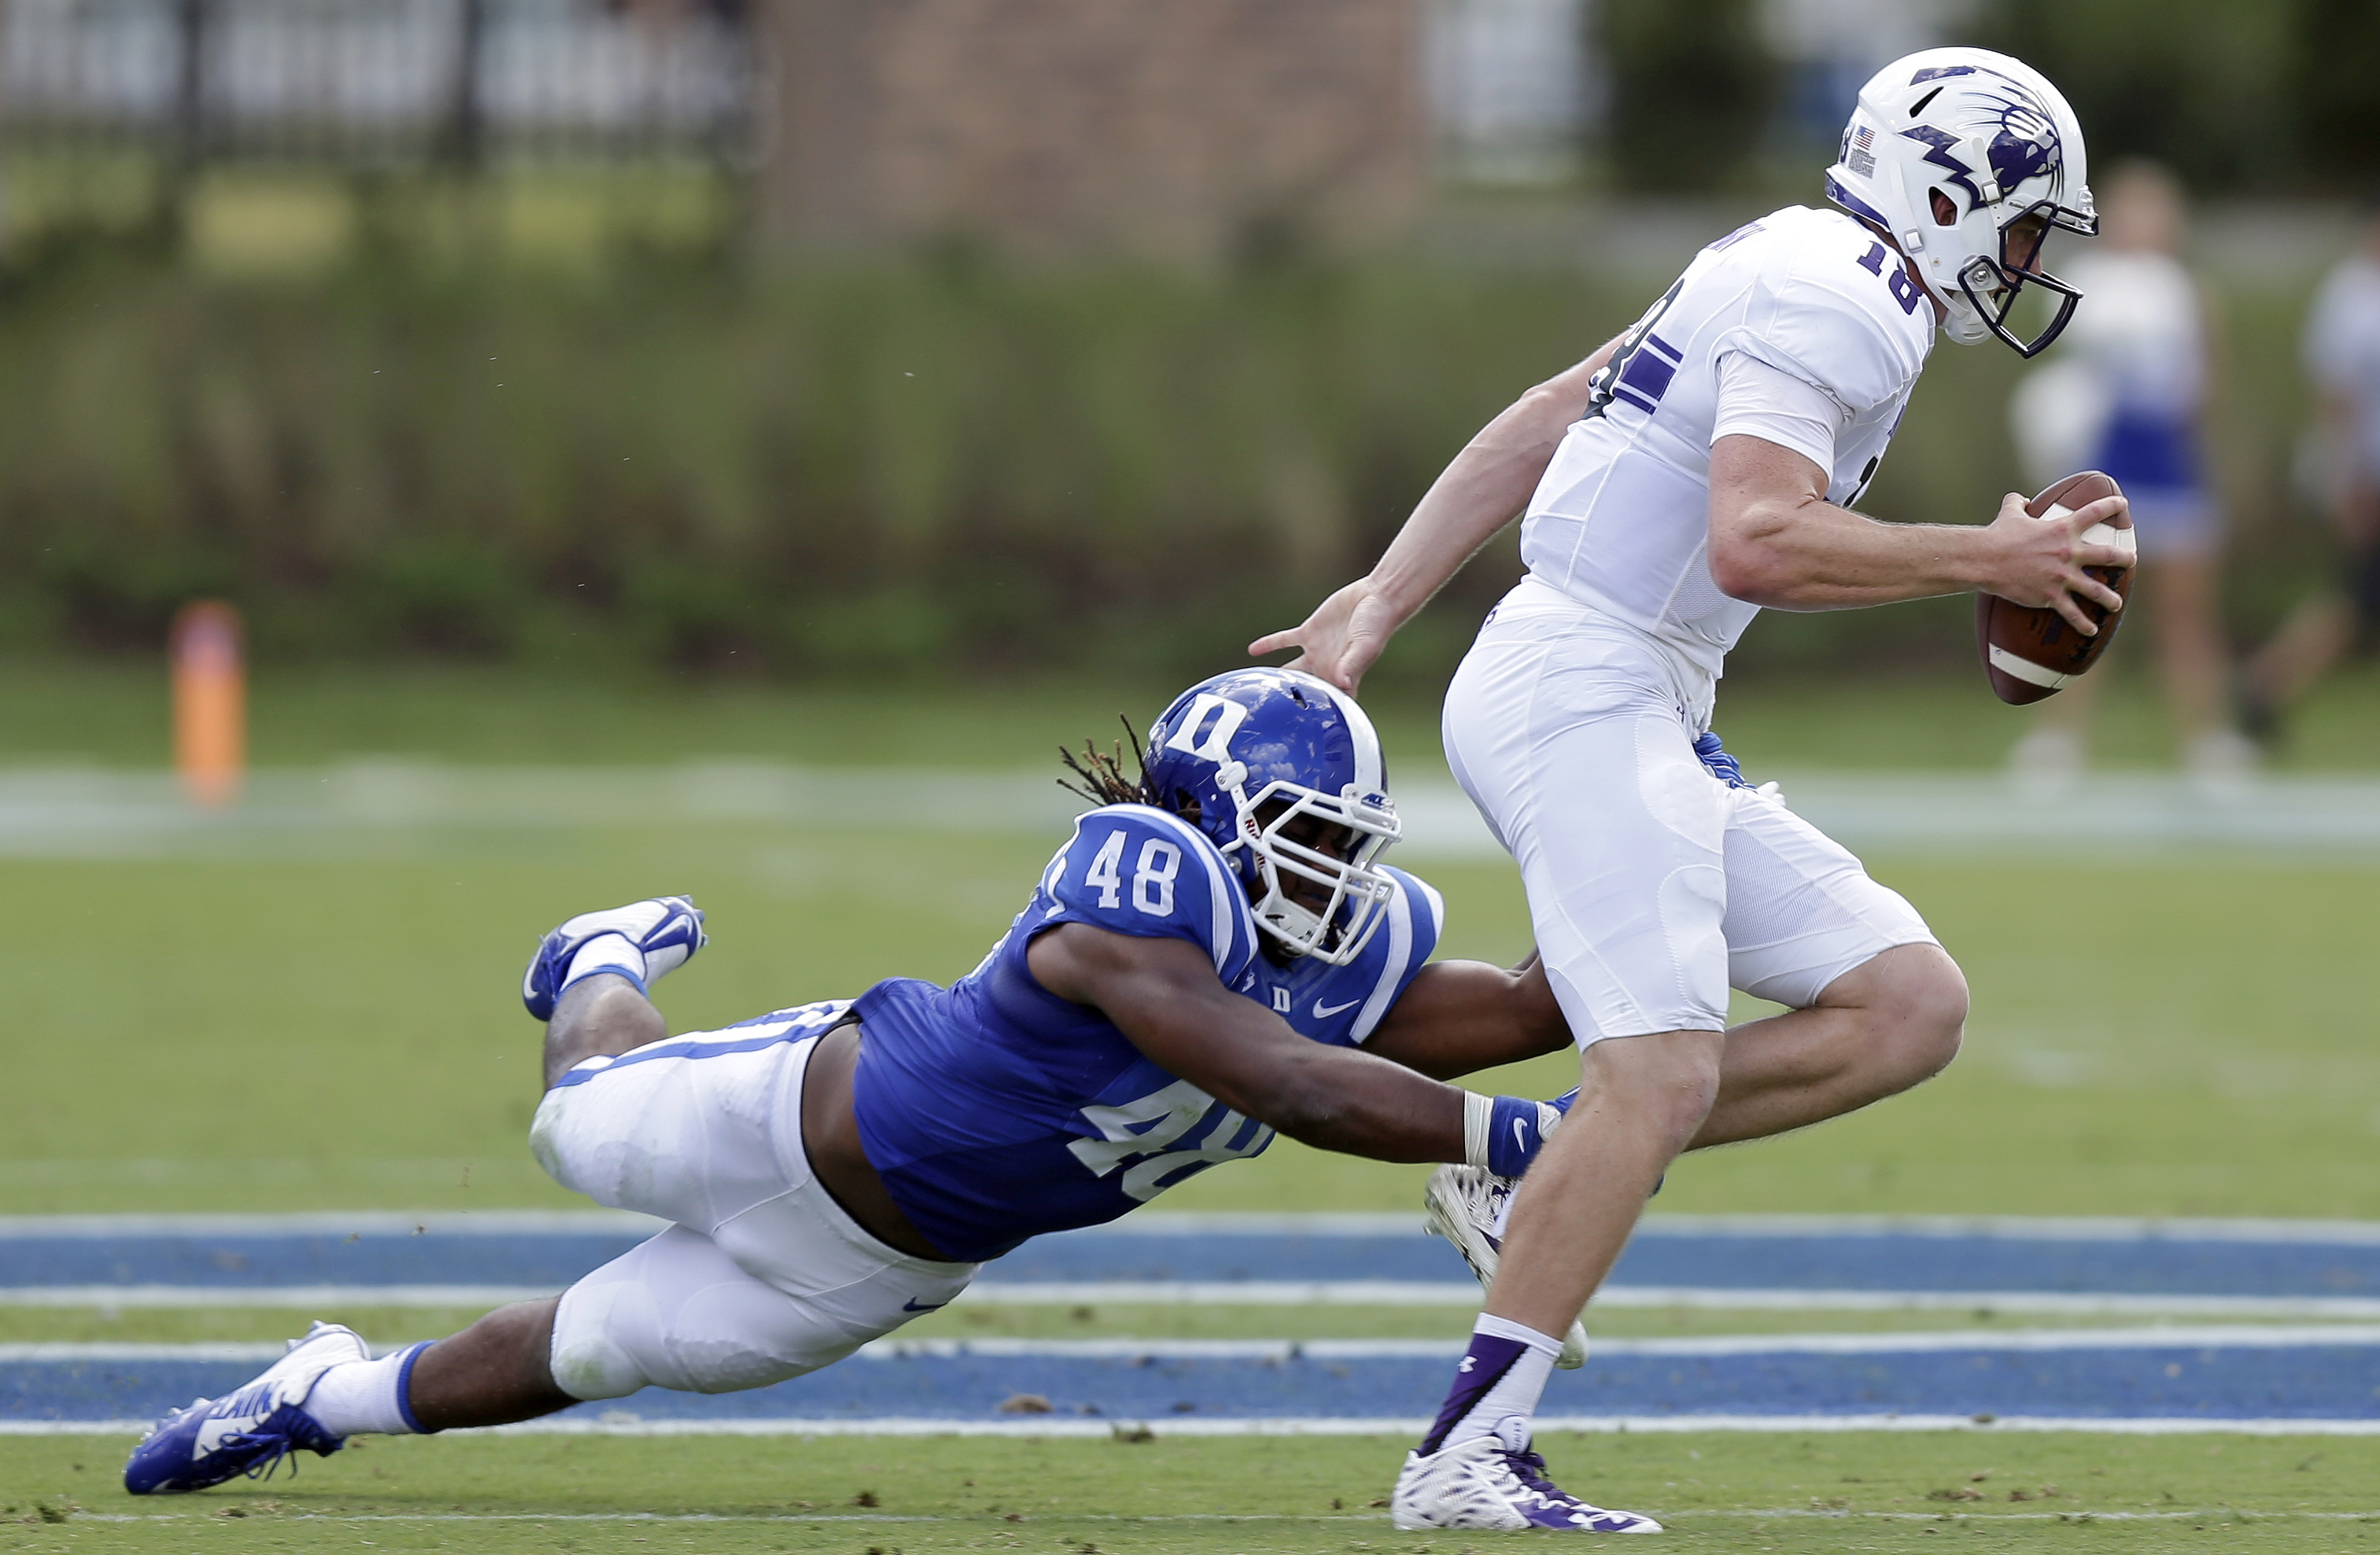 Duke's Deion Williams (48) reaches to tackle Northwestern quarterback Clayton Thorson (18) during the first half of an NCAA college football game in Durham, N.C., Saturday, Sept. 19, 2015. (AP Photo/Gerry Broome)